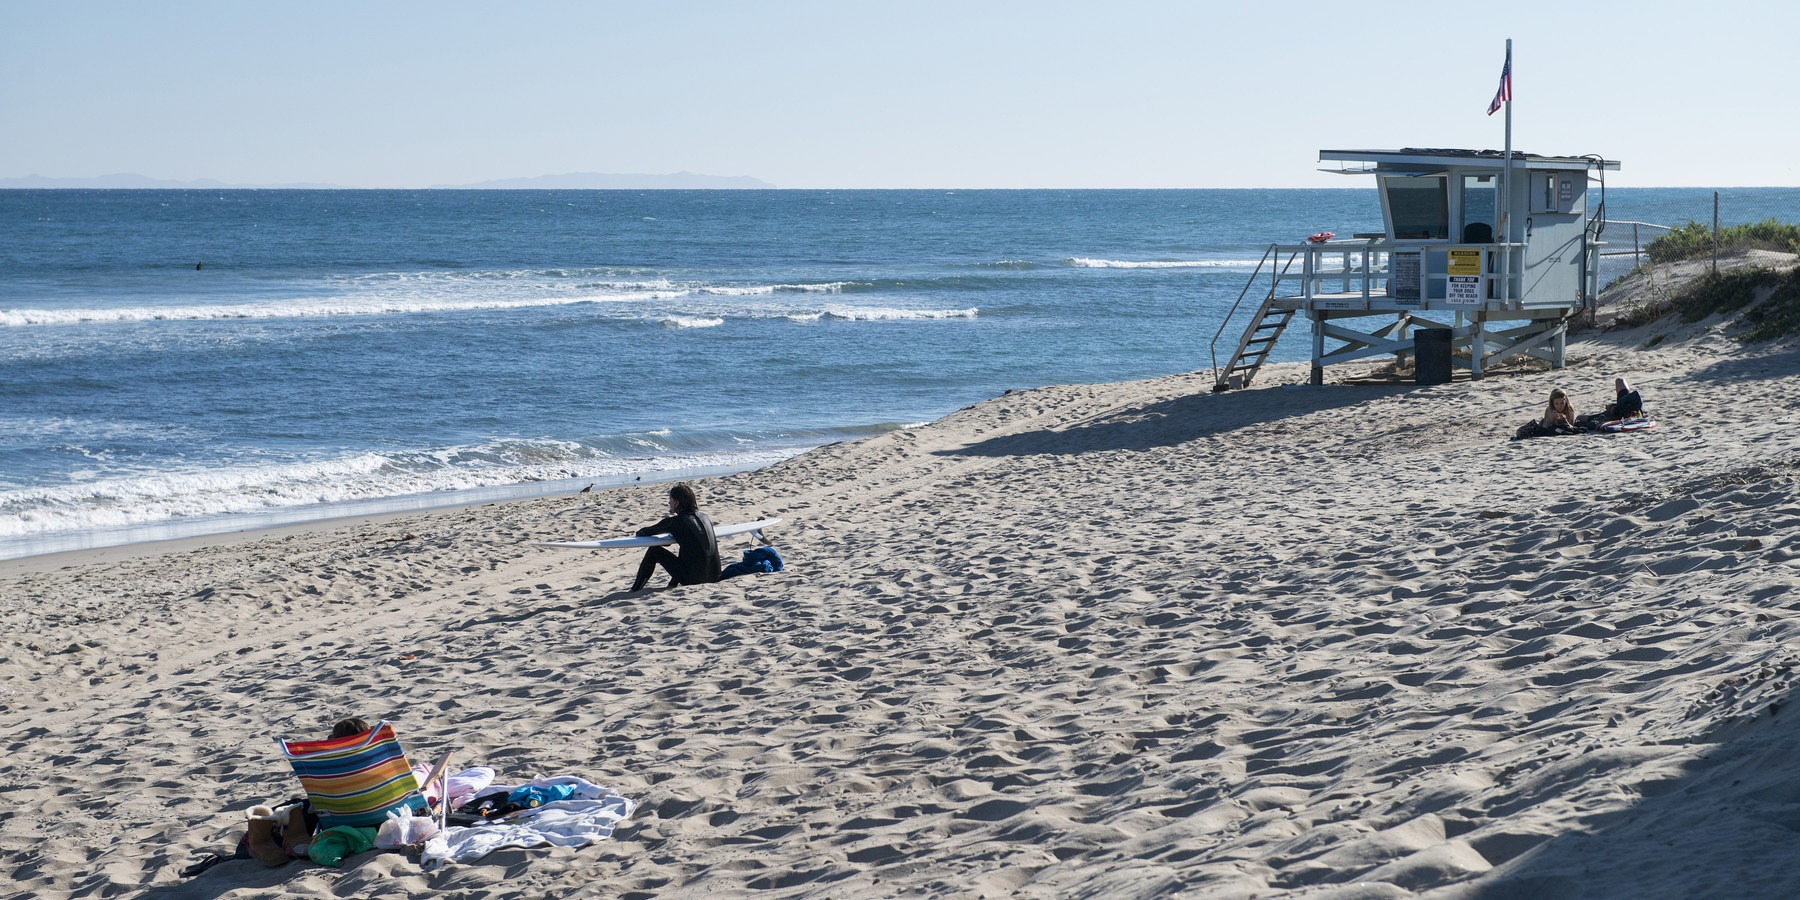 Best west coast beaches for beginner surfers outdoor project best west coast beaches for surfrider beach in malibu is a contender for one of the west coasts most famous surf publicscrutiny Images